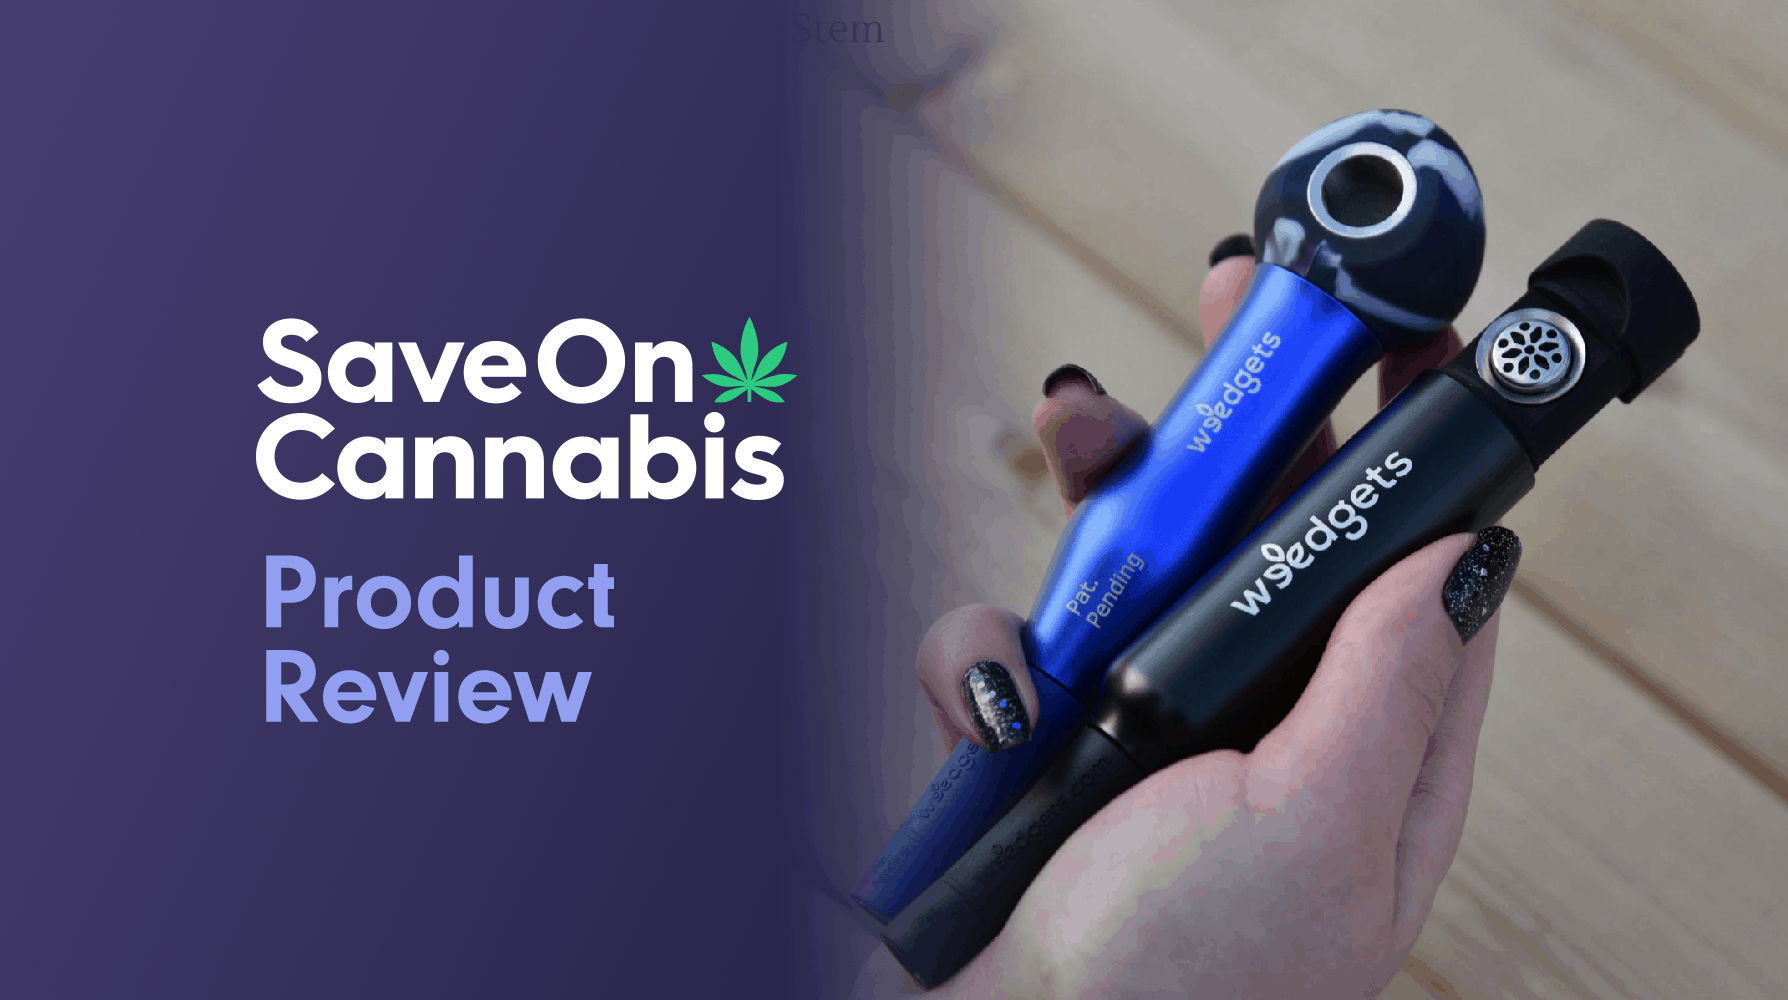 Weedgets Maze Pipe & Slider Pipe Save On Cannabis Review Website